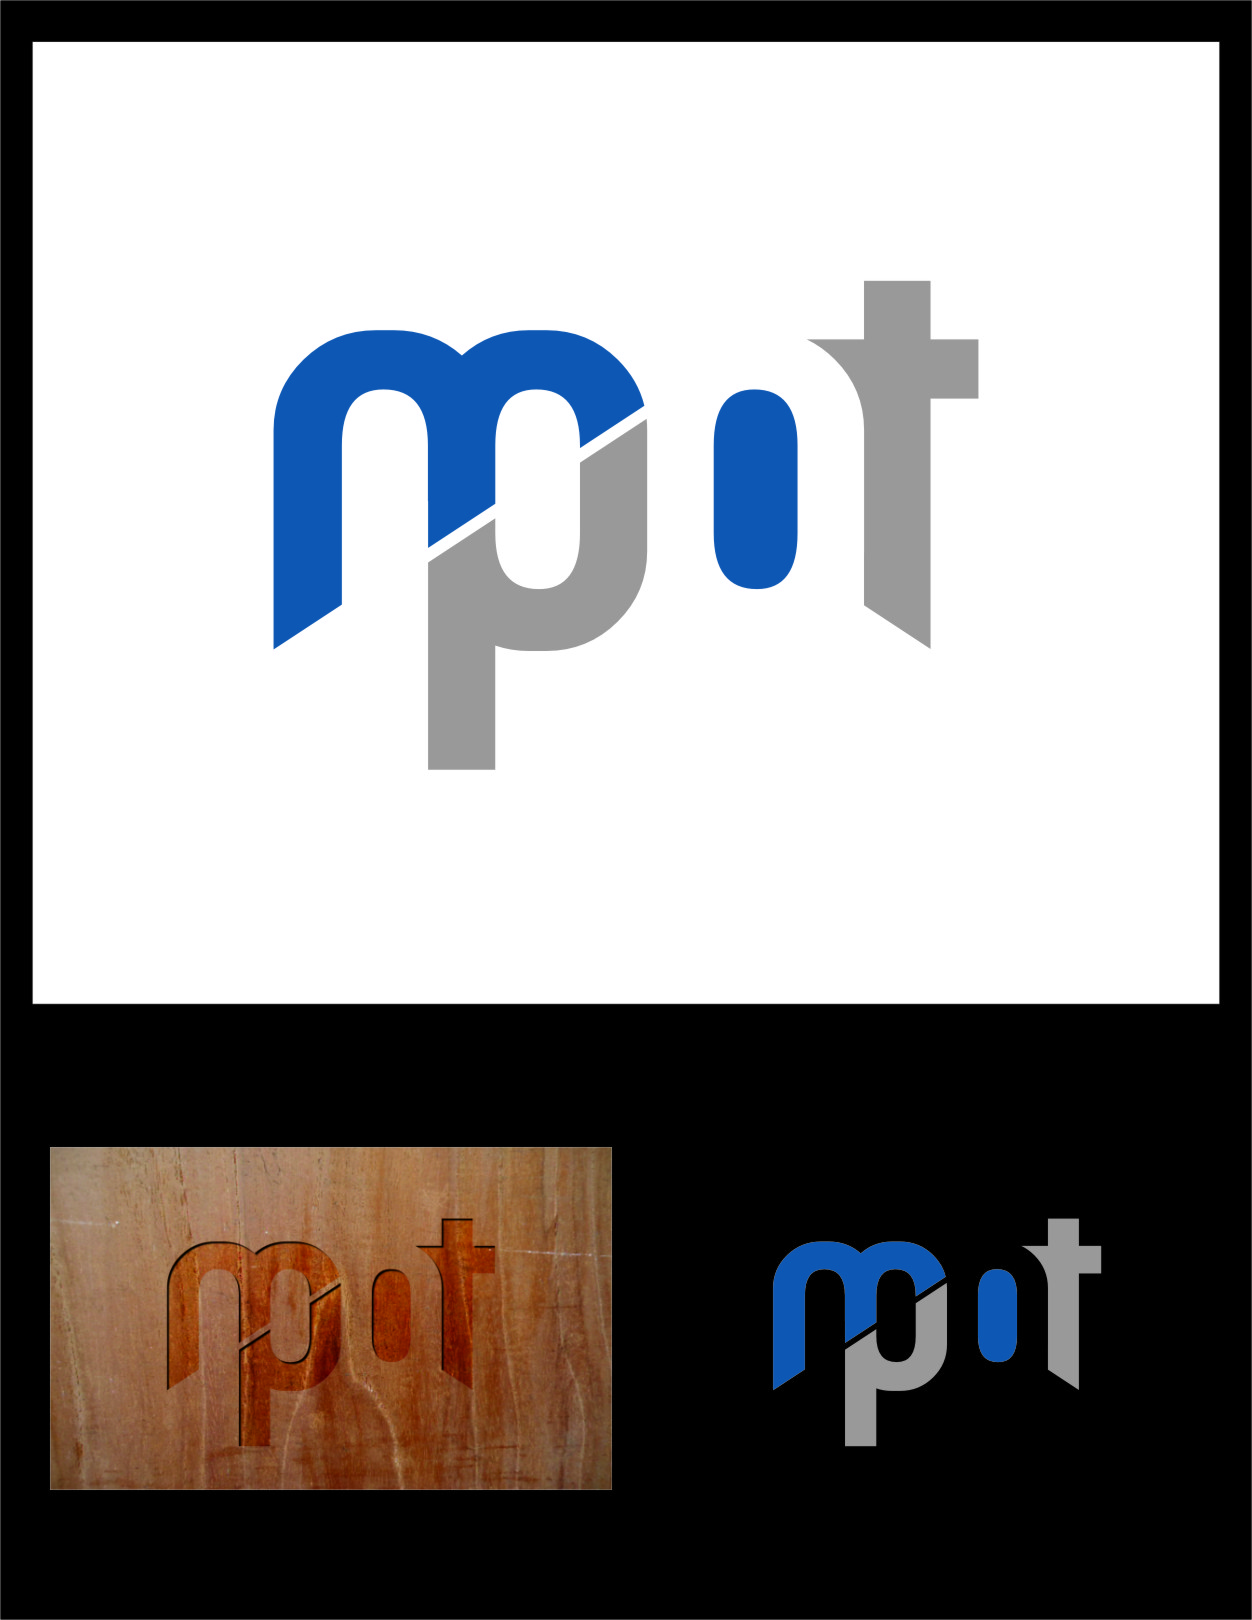 Logo Design by Ngepet_art - Entry No. 174 in the Logo Design Contest Mpot inc  Logo Design.